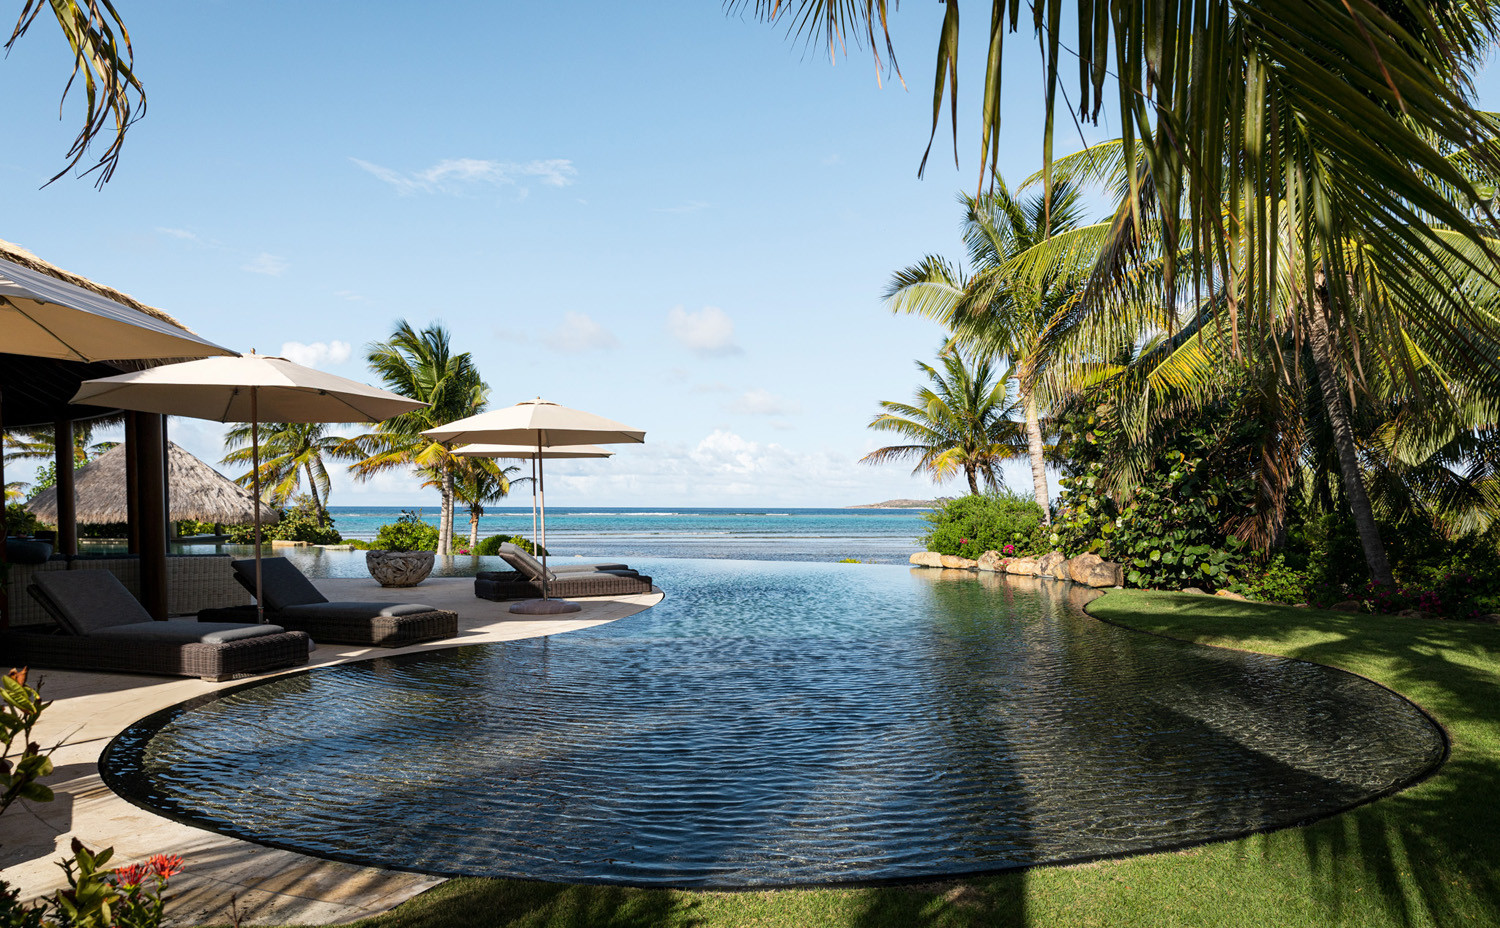 news-main-moskito-island-a-virgin-limited-edition-property-in-the-caribbean-debuts-two-new-estates.1633973798.jpg